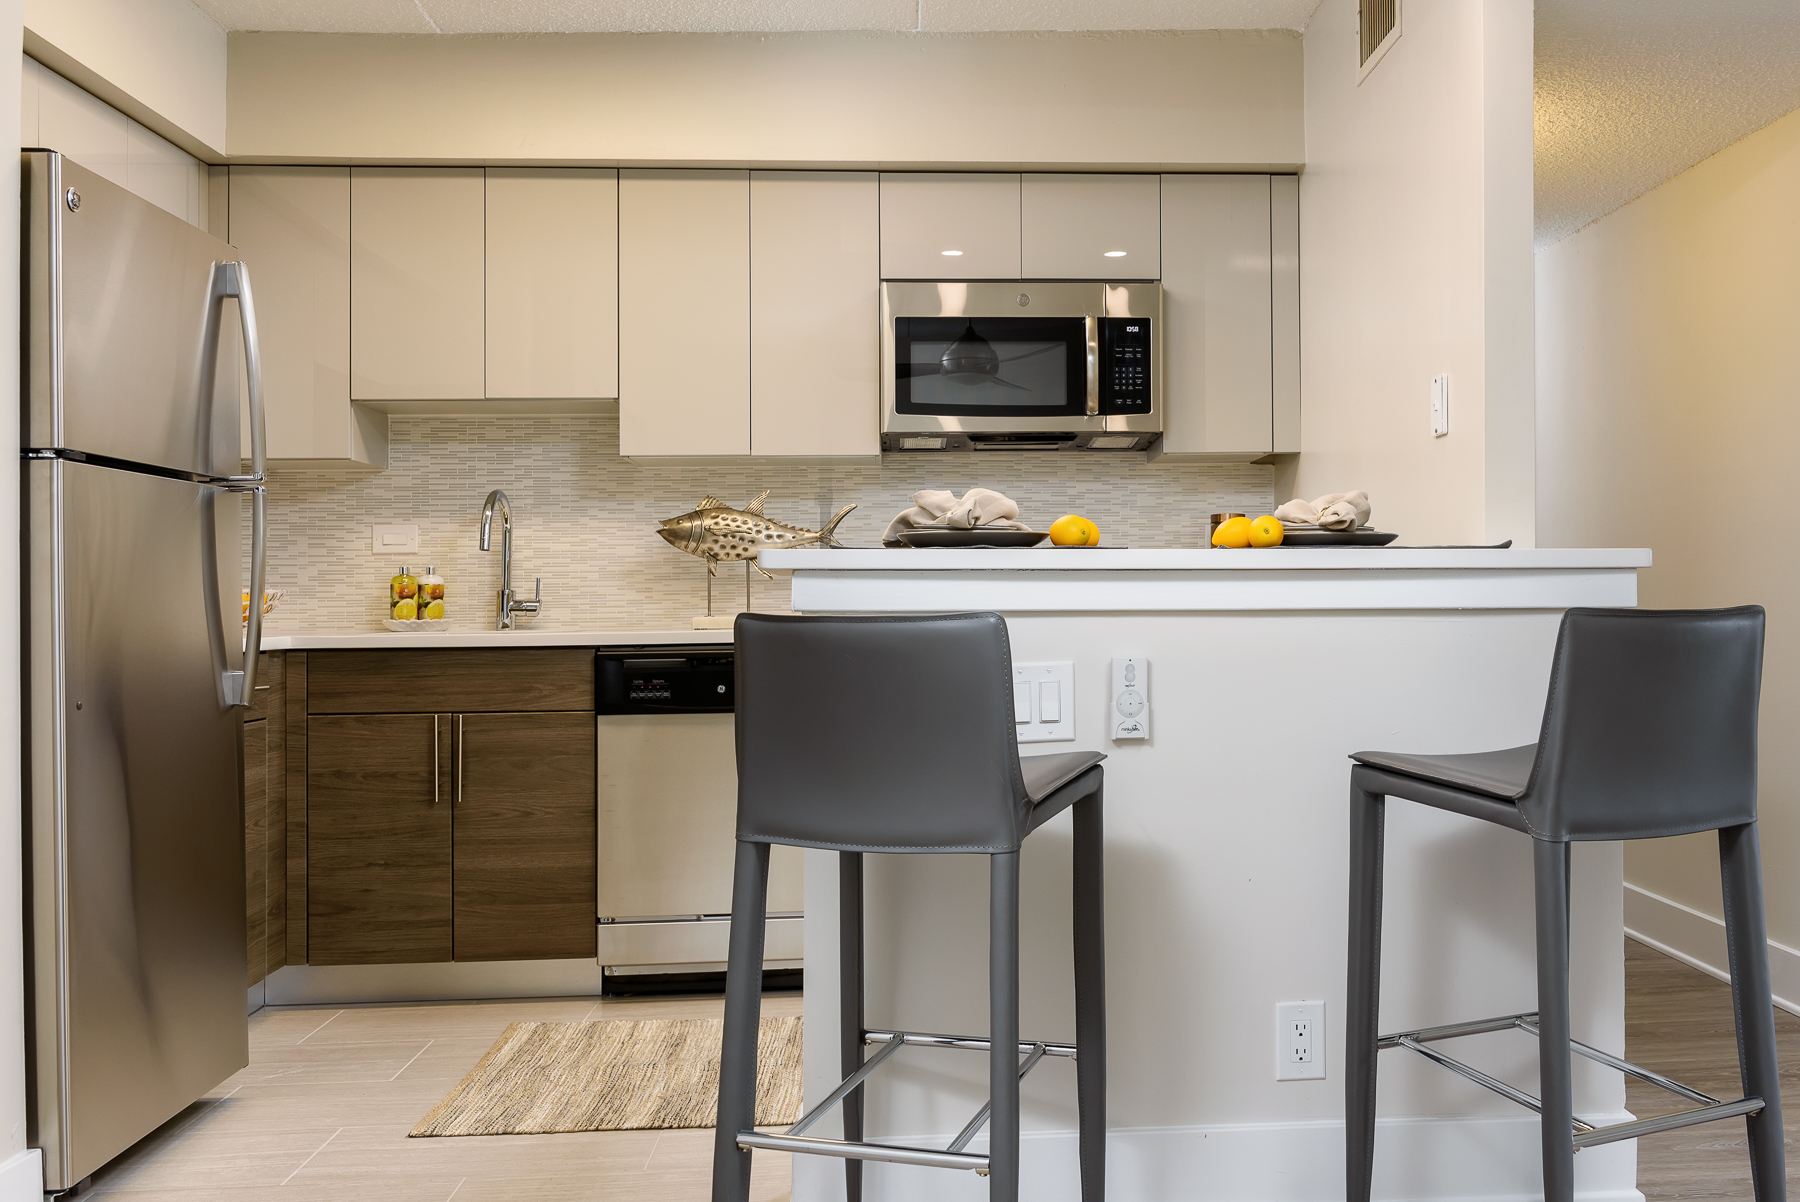 kitchen in a King of Prussia apartment at Valley Forge Towers